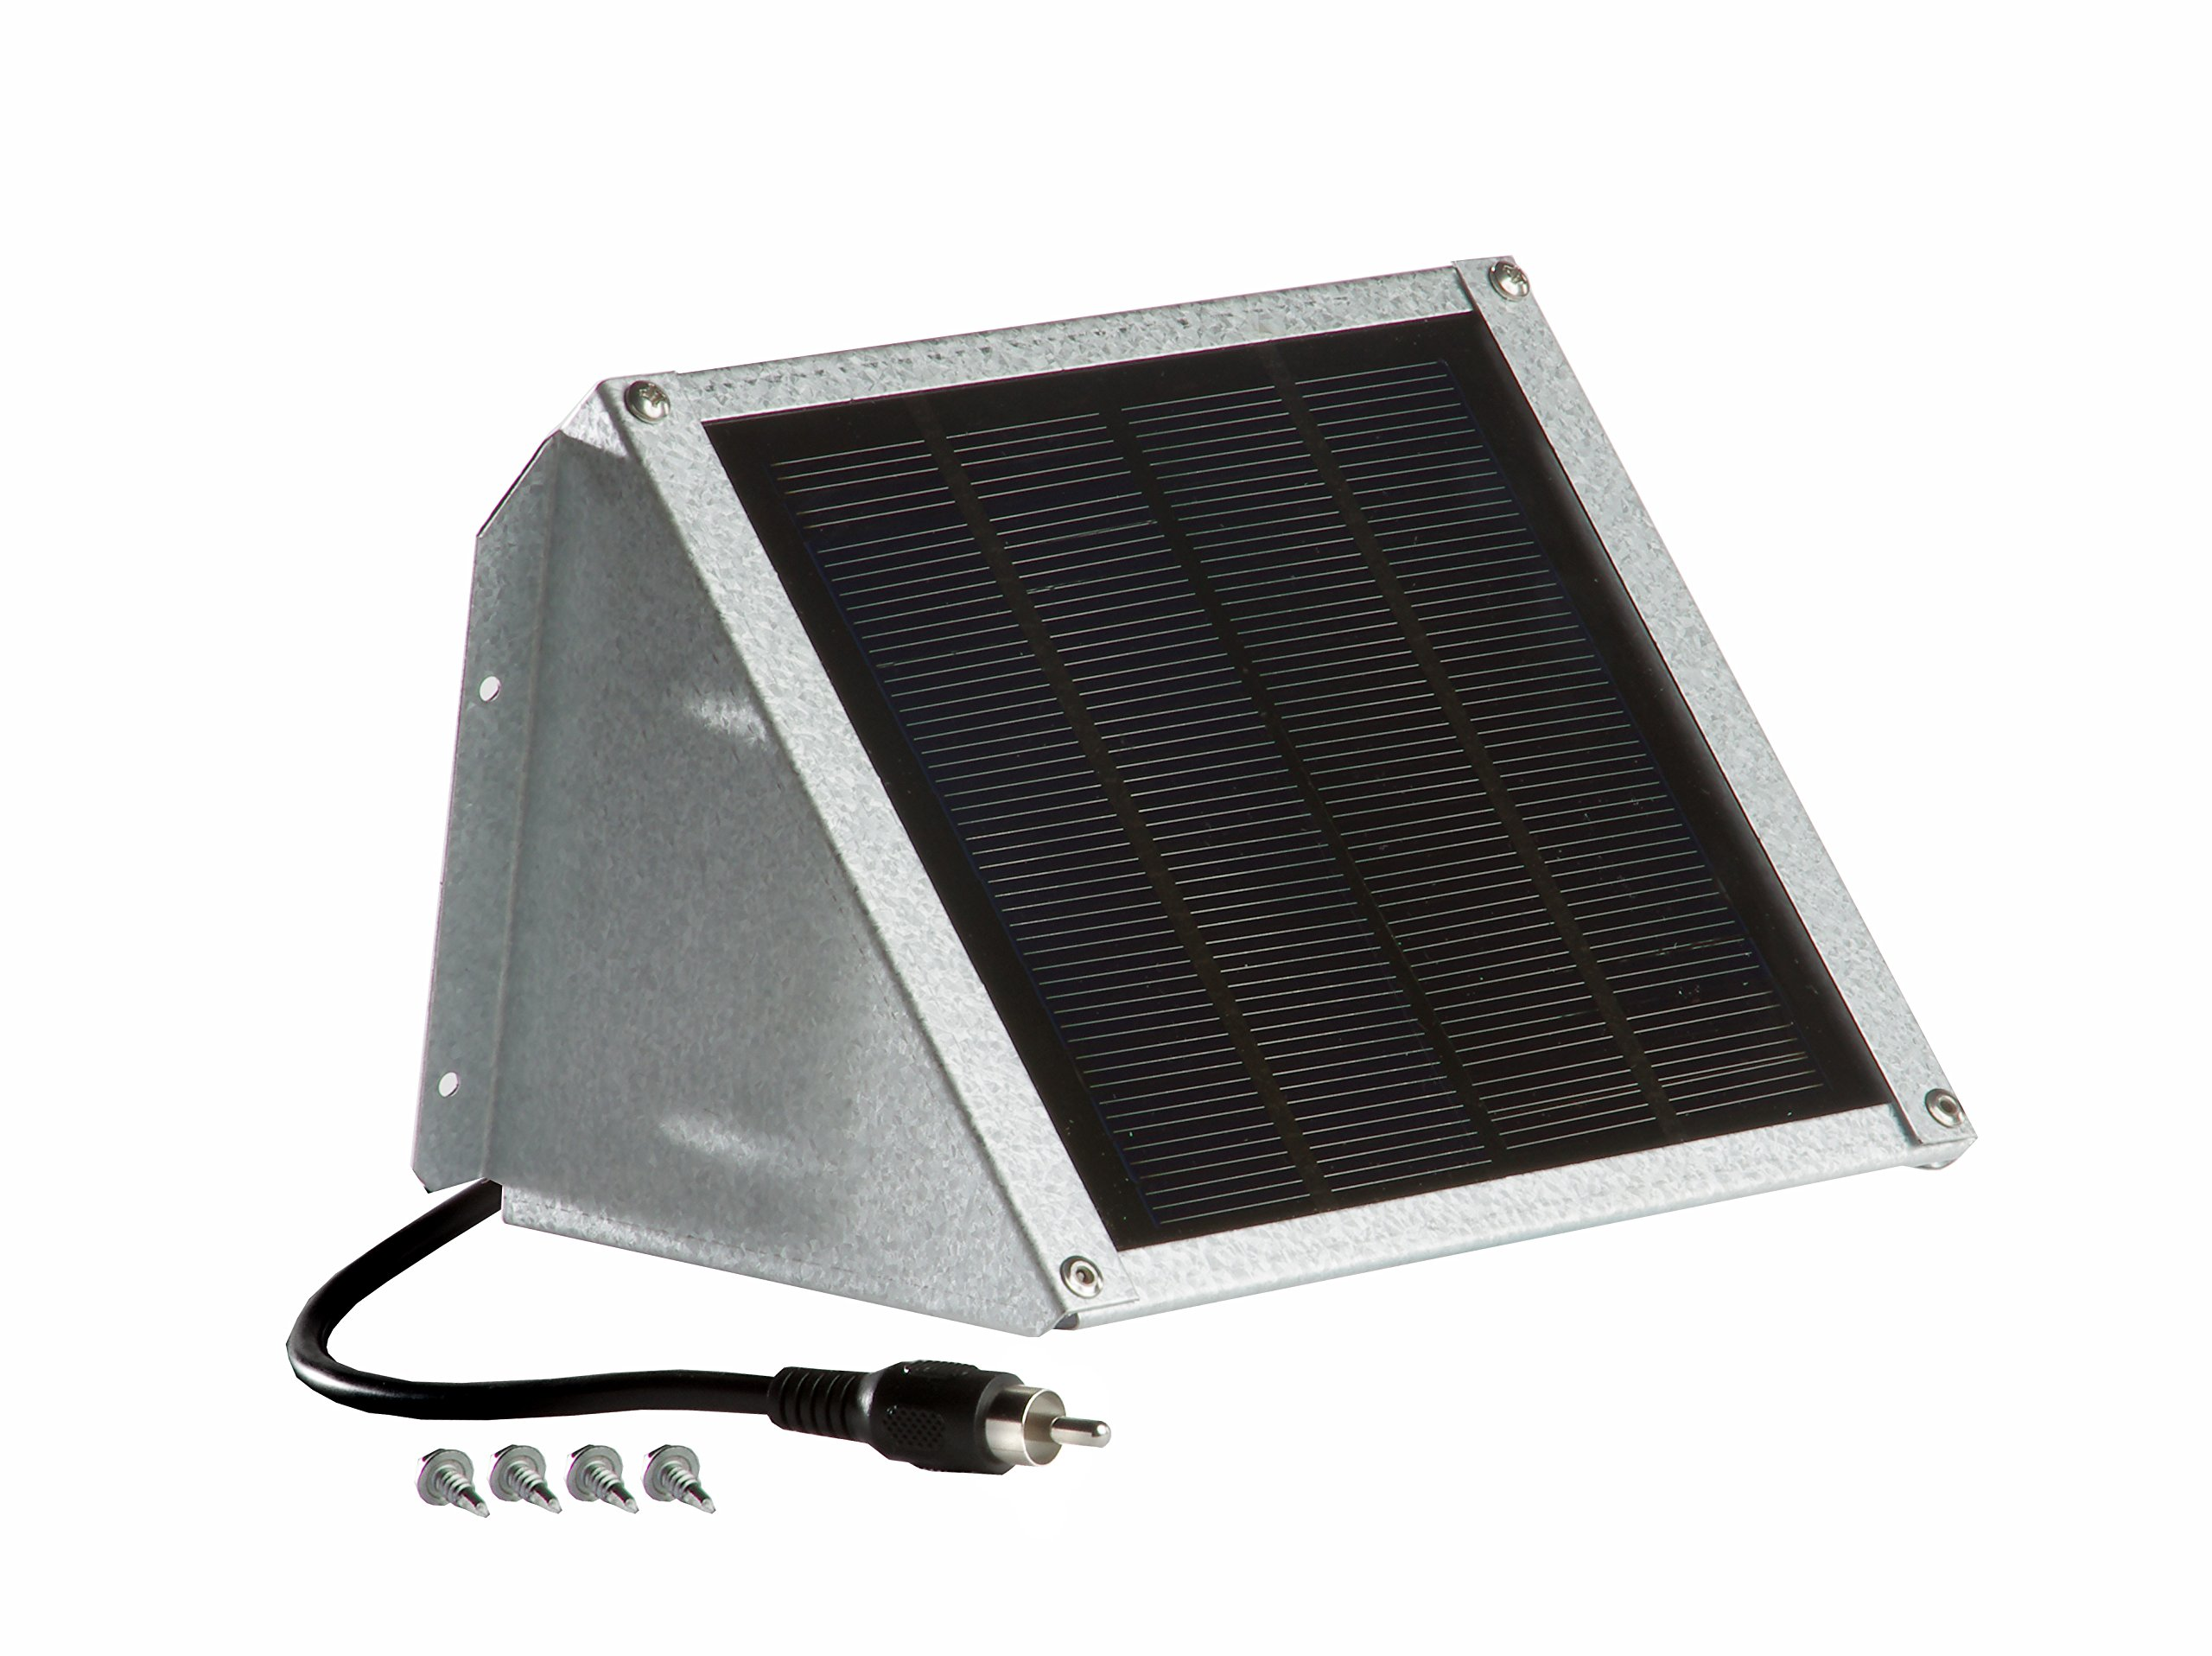 Sweeney Feeders SX212-GA Solar Charger for Directional Feeders -12 Volt 2 Watt, Galvalume Finish